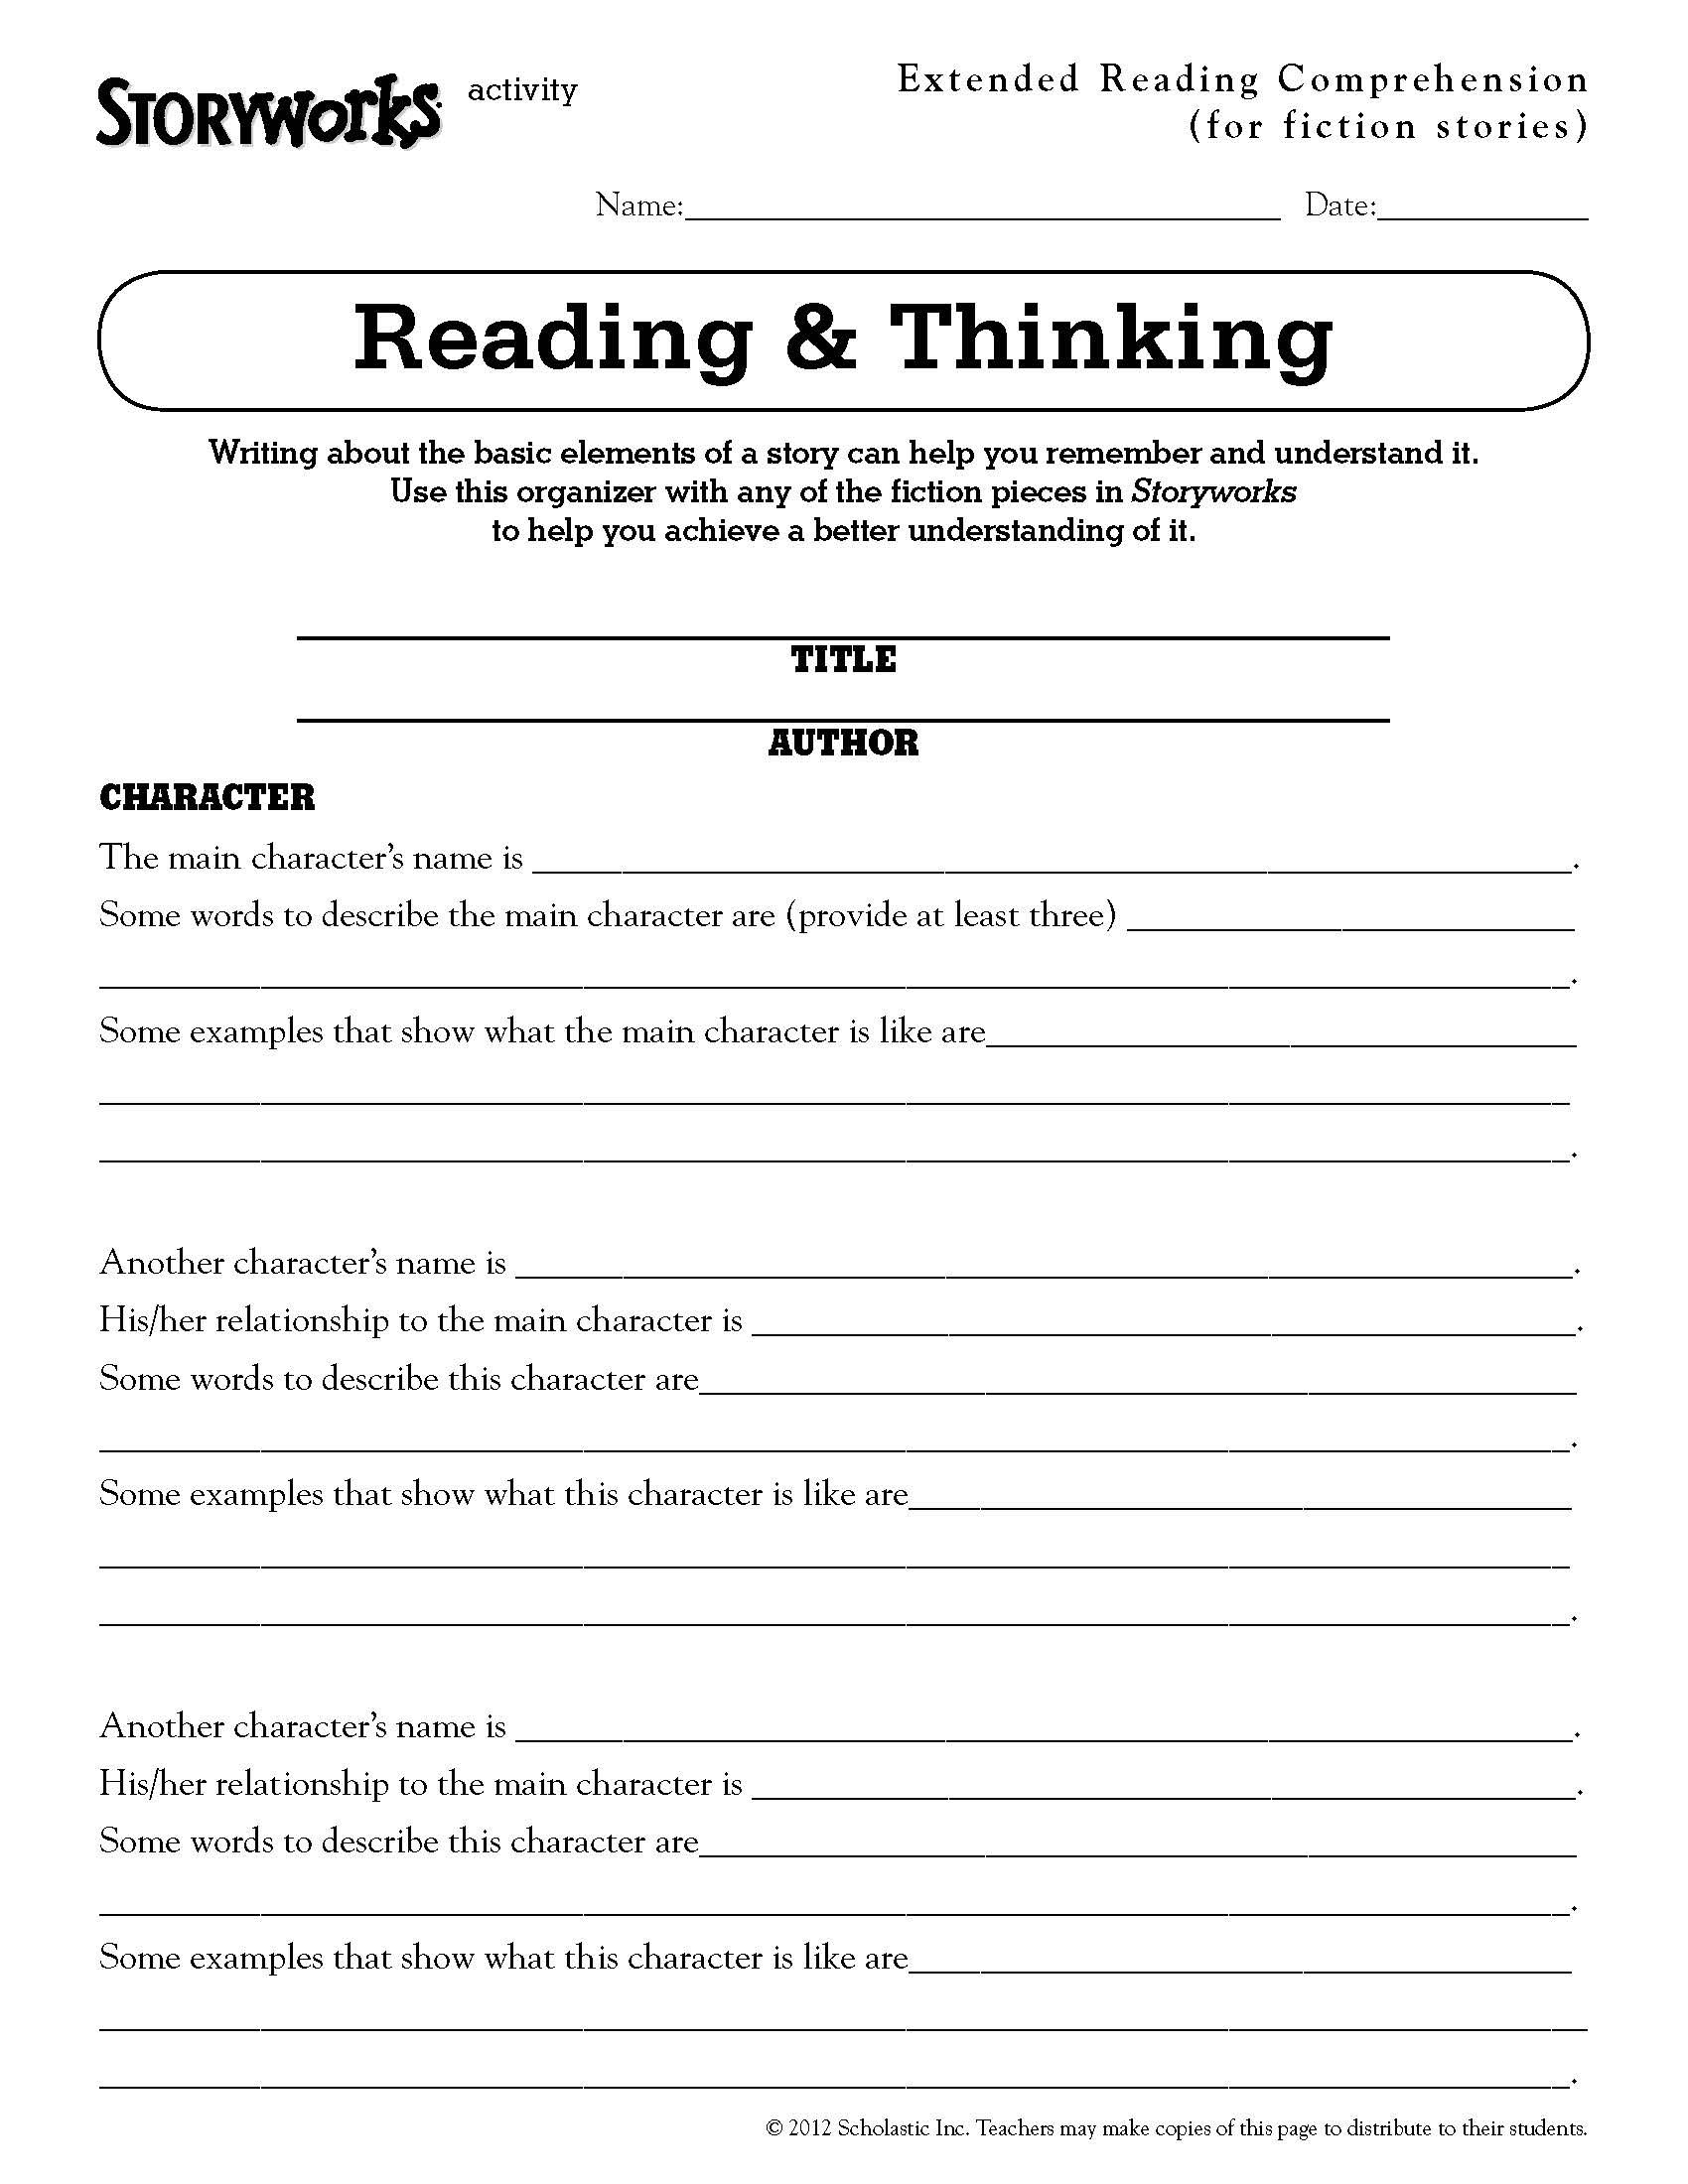 Extended Reading Comprehension Activity For Fiction Stories Storyworks